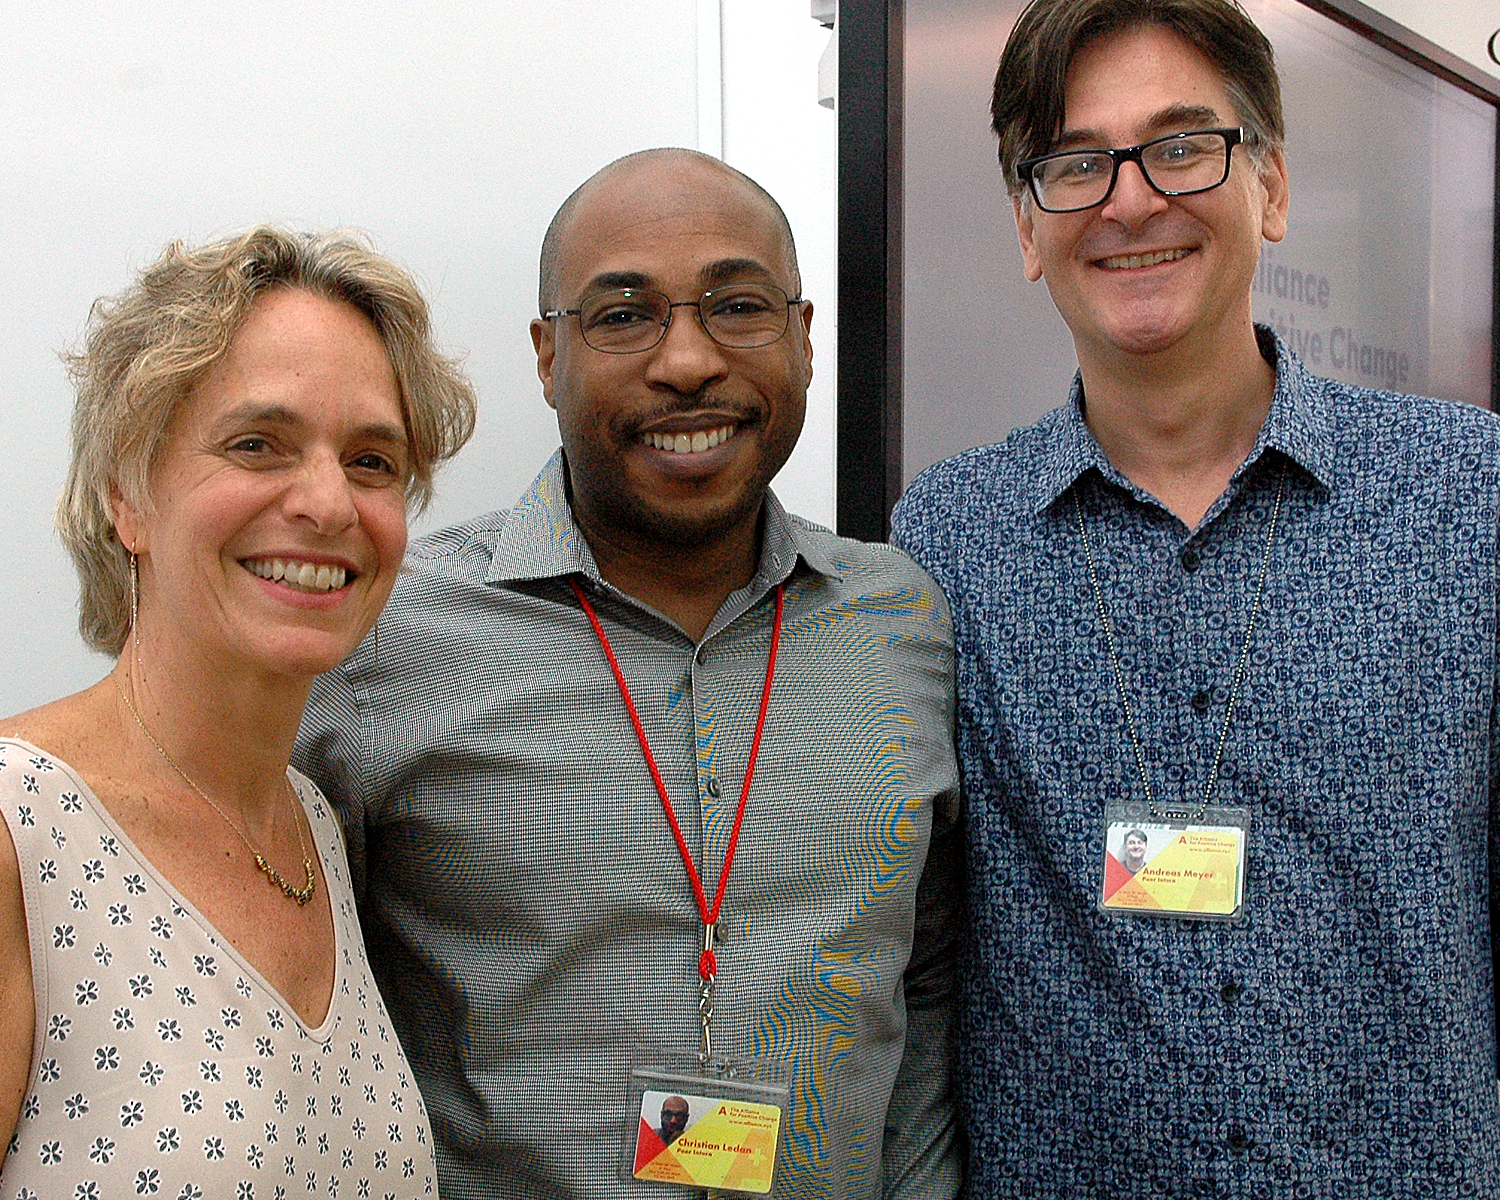 Sharen Duke, Executive Director/CEO with Andreas M. and Christian L.